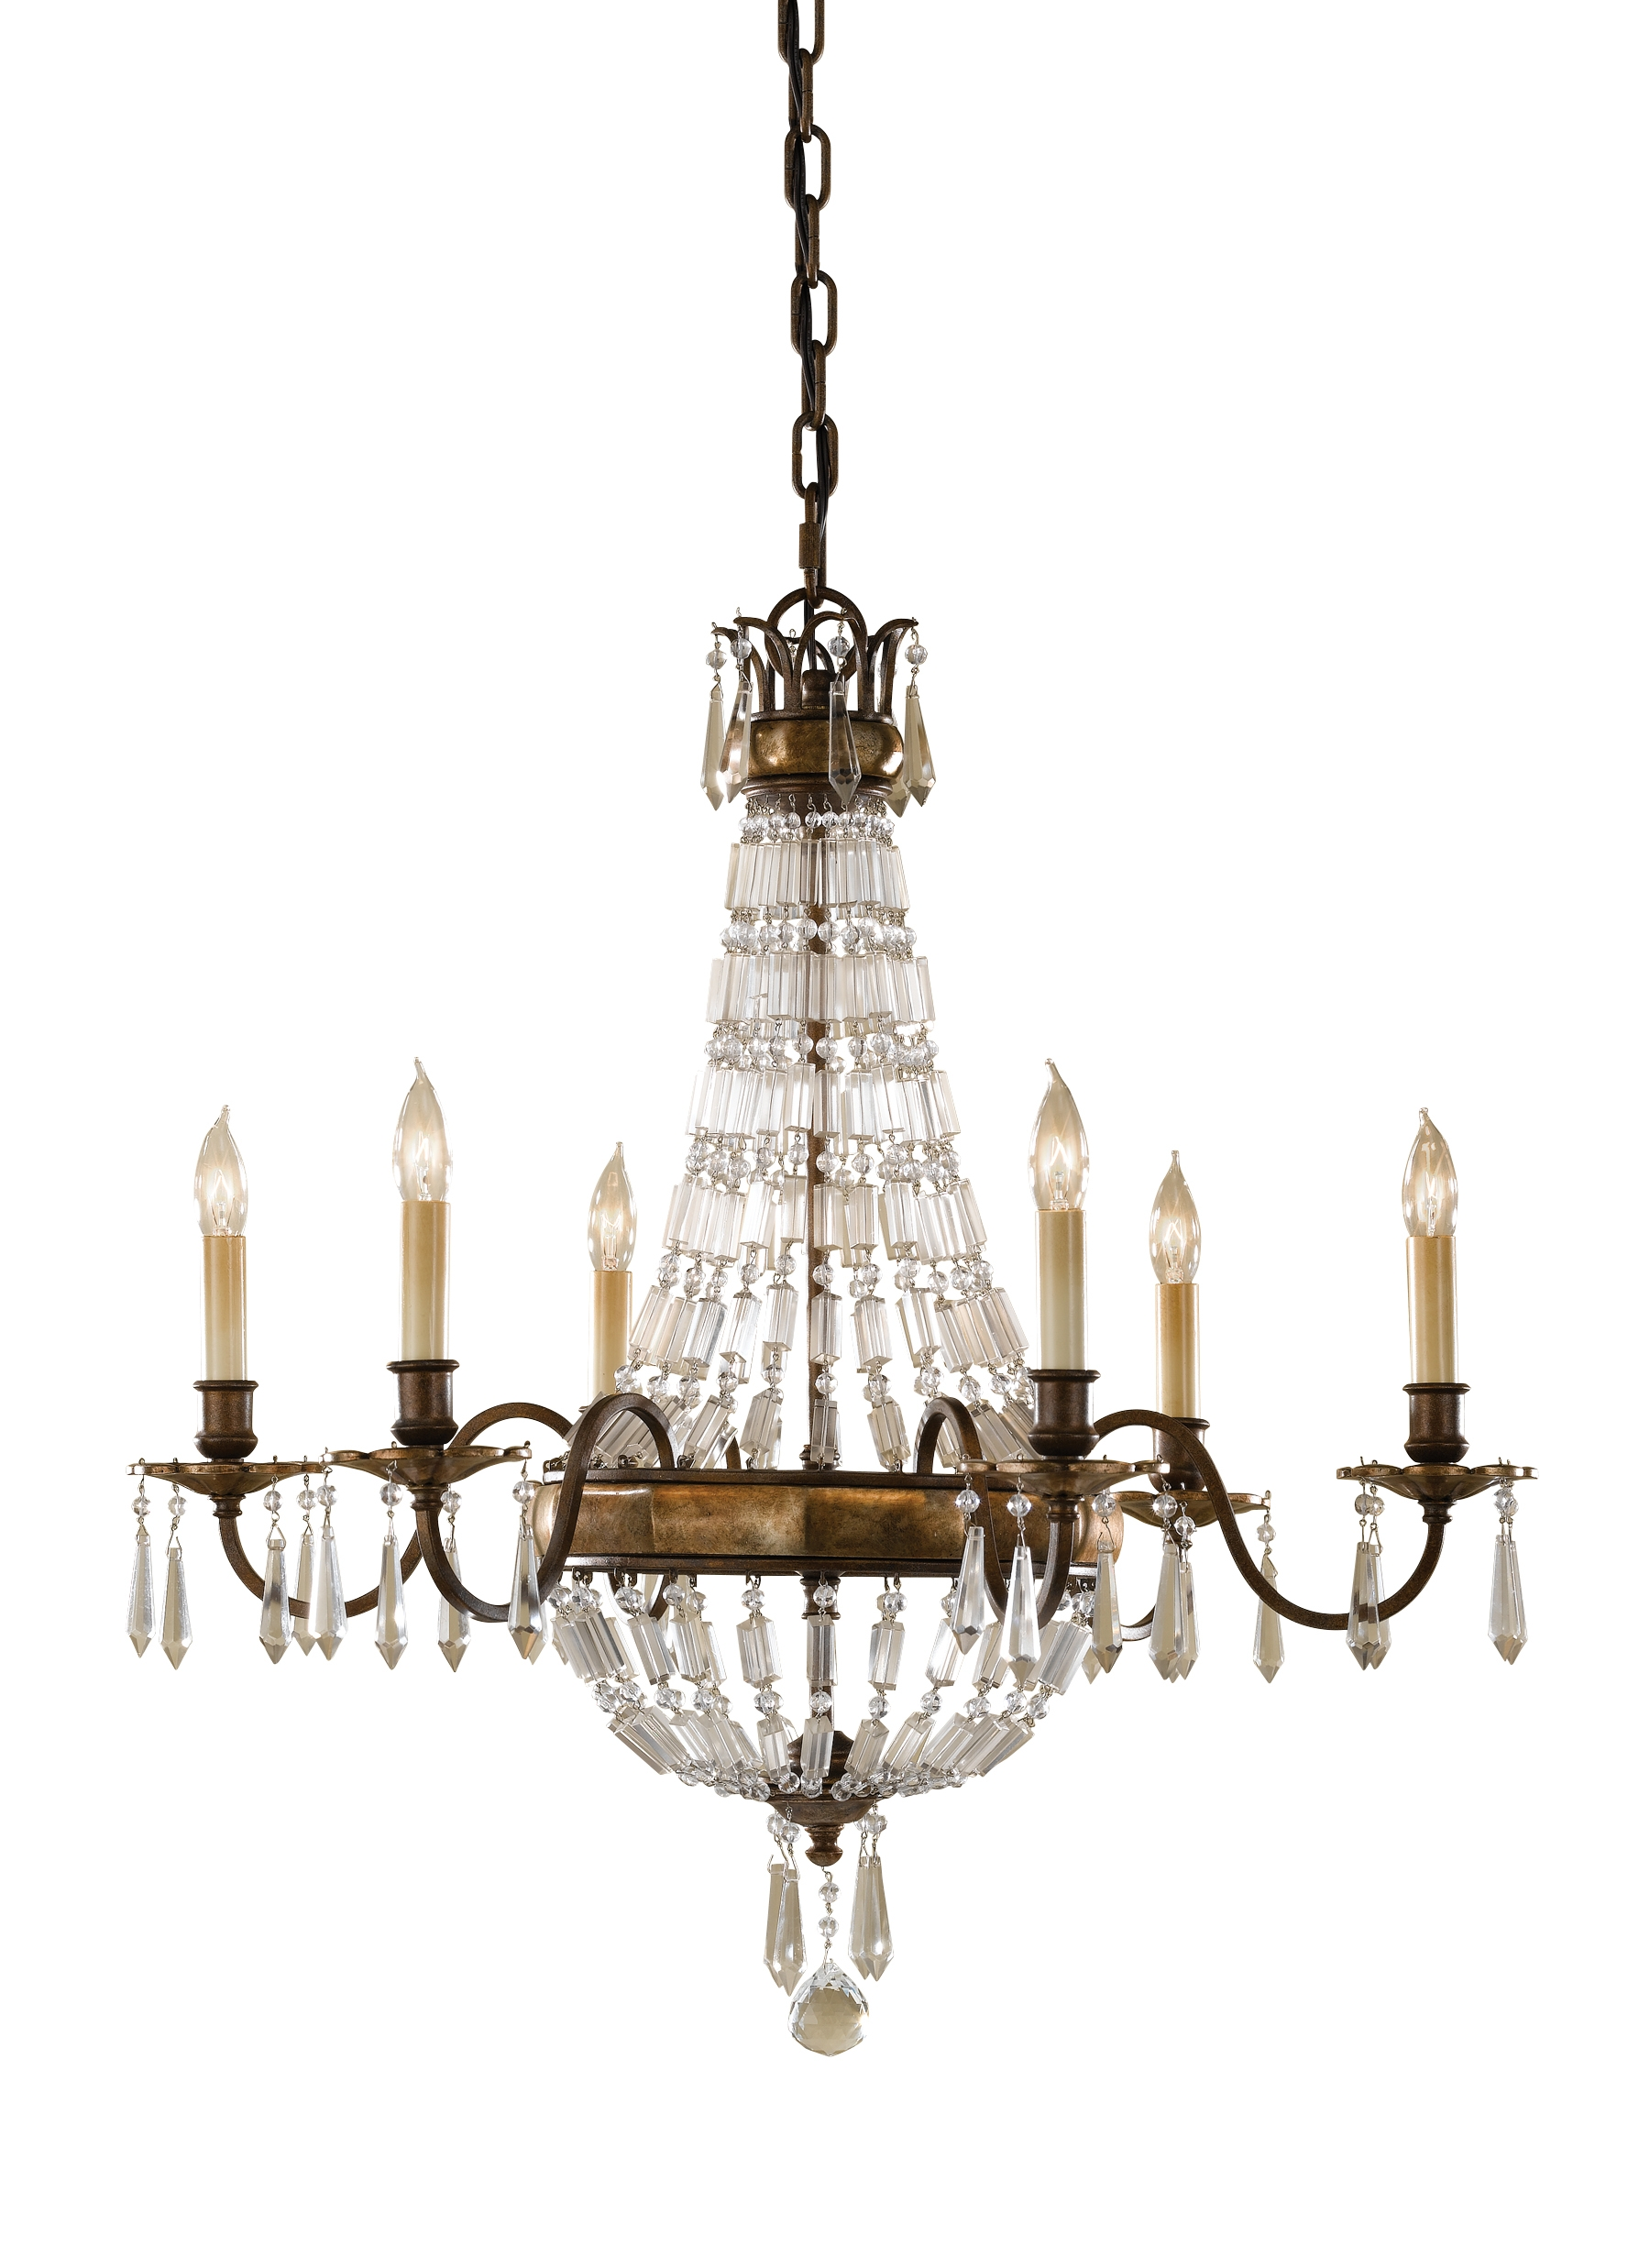 Bellini From Feiss For Feiss Chandeliers (Image 1 of 25)